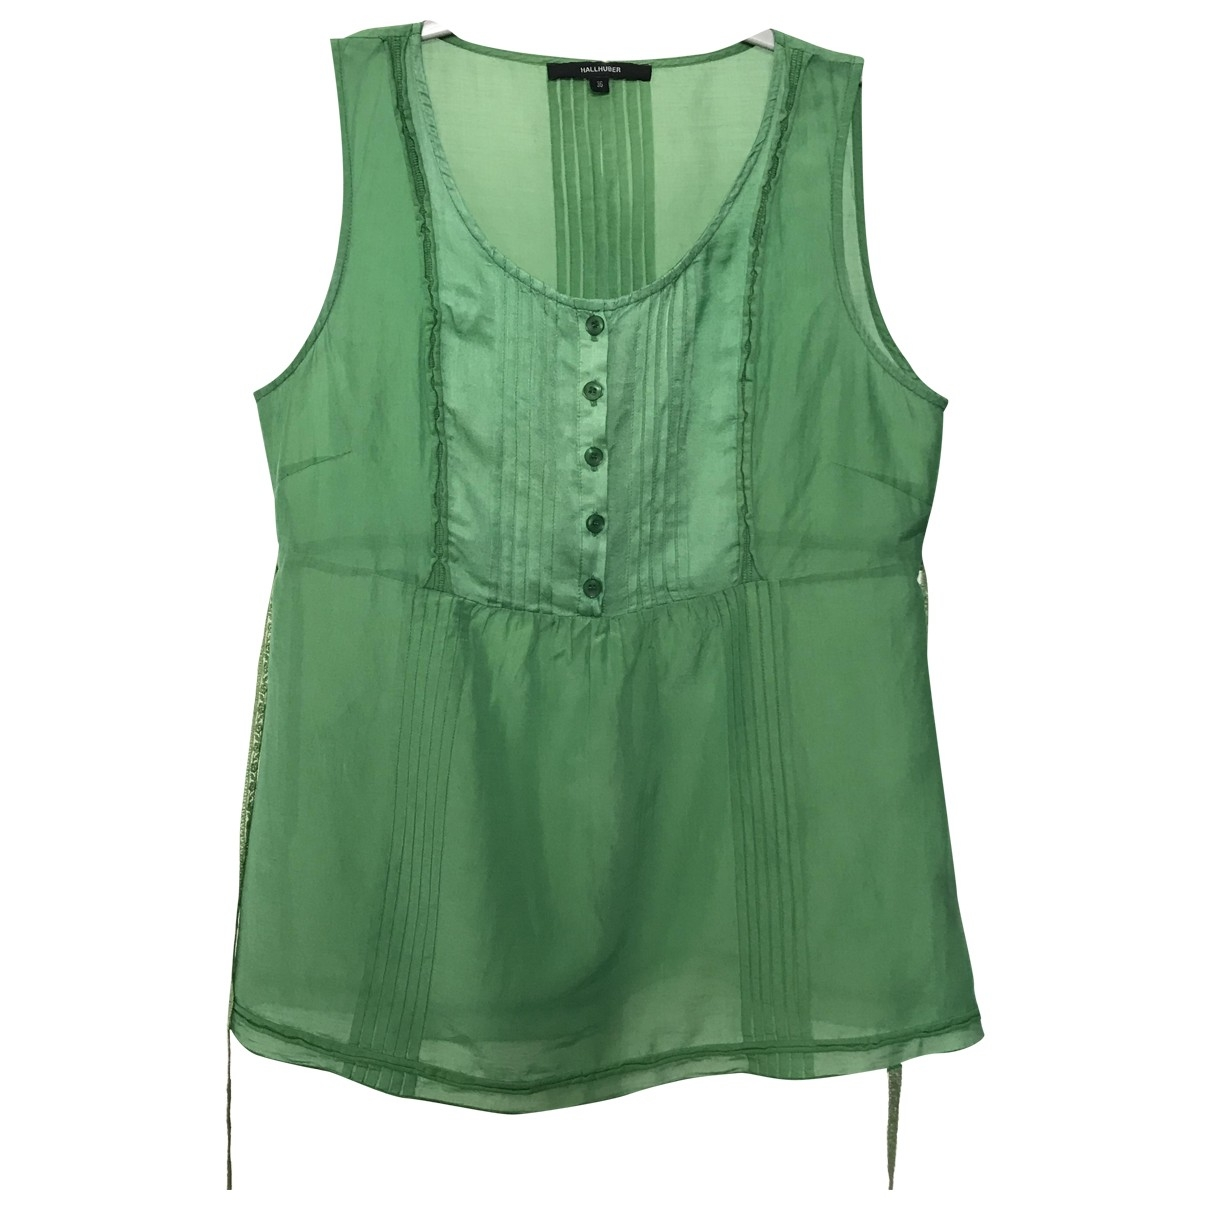 Hallhuber \N Green Cotton  top for Women 36 FR